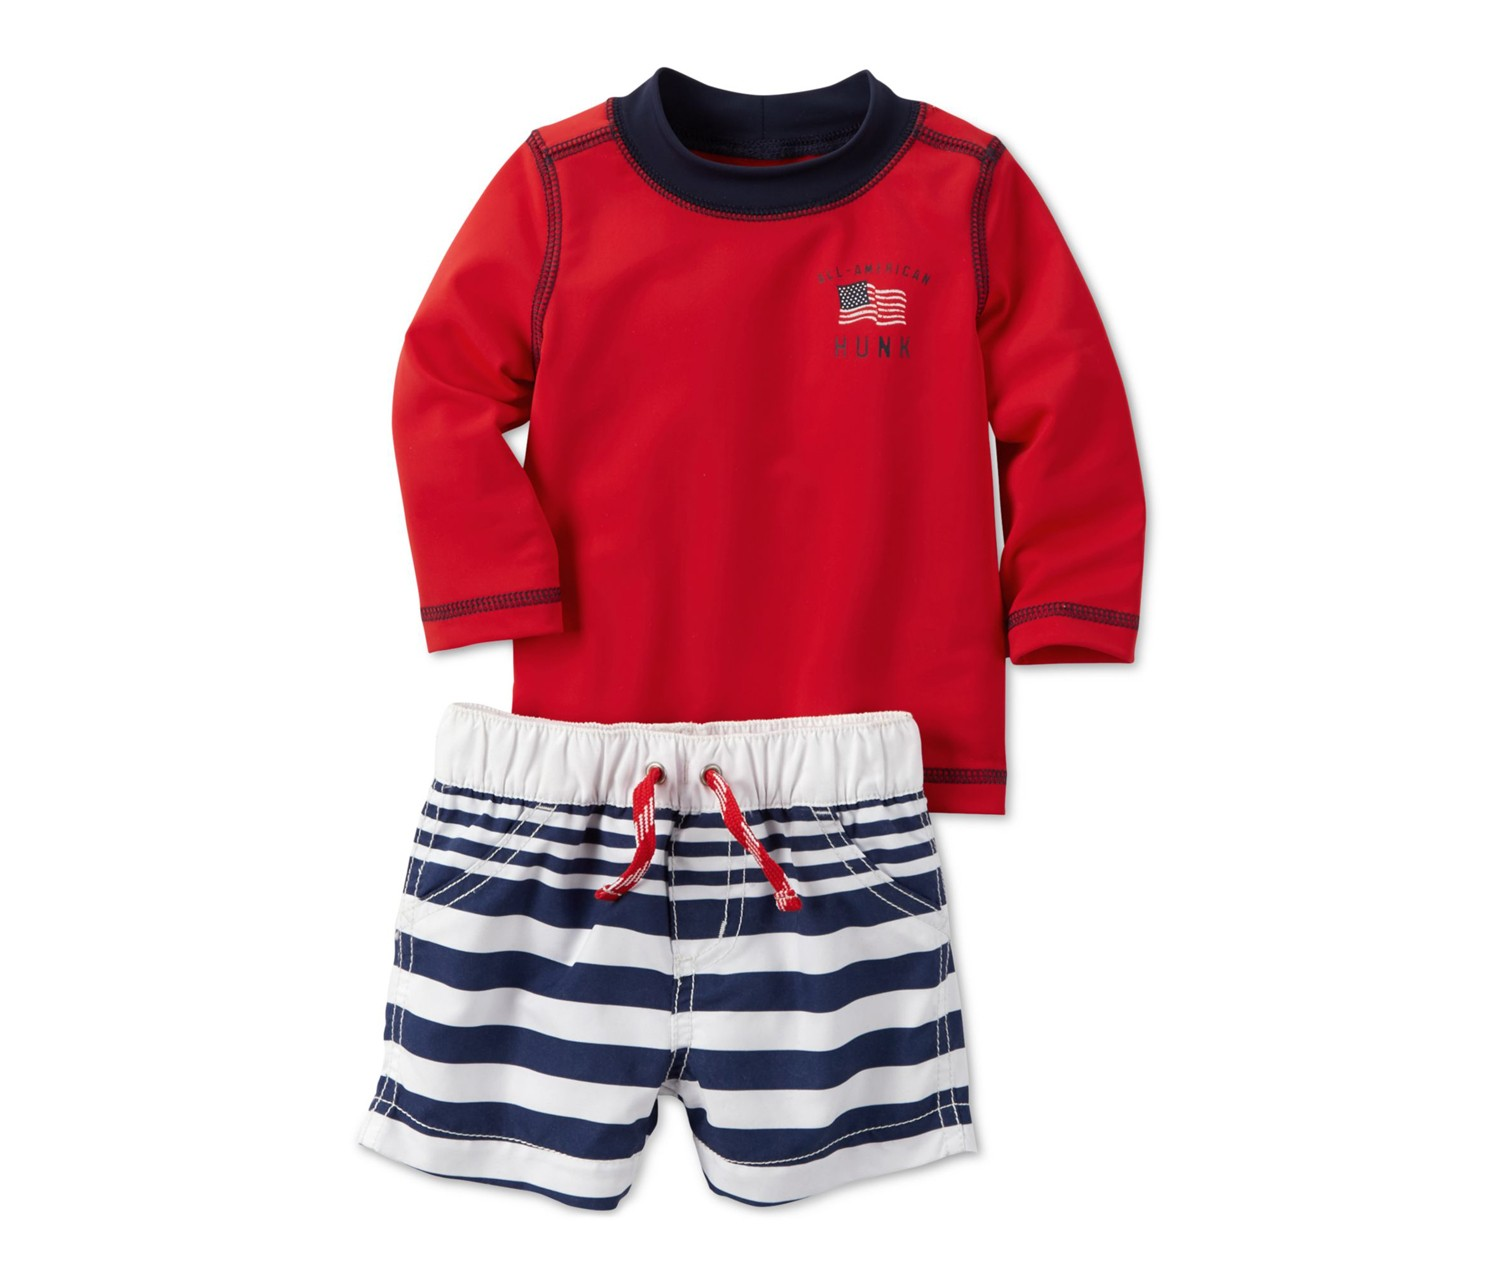 c53b1cc0b4 Shop Carters Carters Baby Boys 2-Piece Swimwear, Red for Toddlers ...